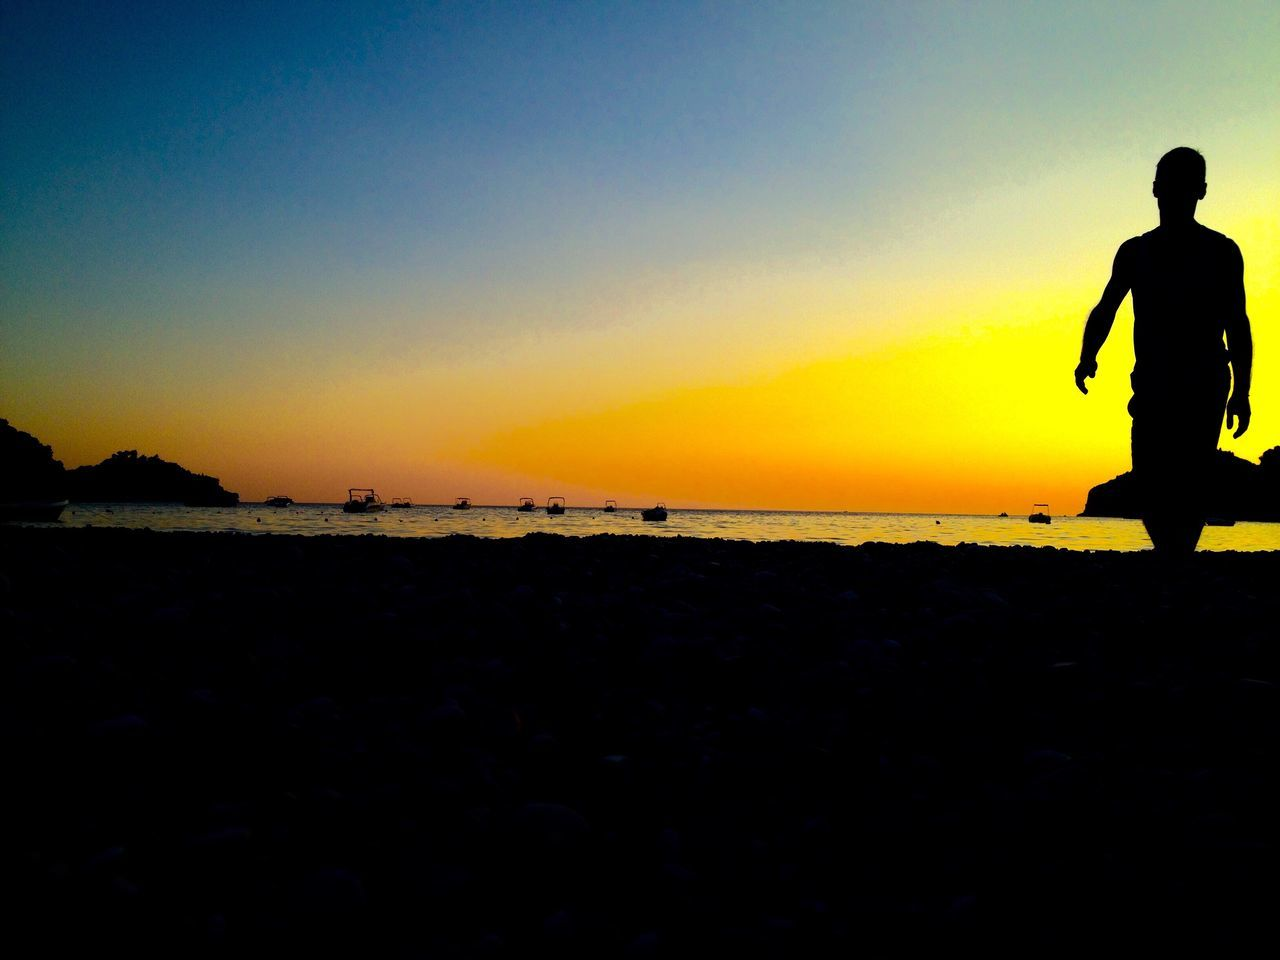 sunset, silhouette, nature, beauty in nature, scenics, beach, tranquil scene, tranquility, orange color, outdoors, one person, real people, sky, full length, sea, lifestyles, water, leisure activity, vacations, clear sky, men, people